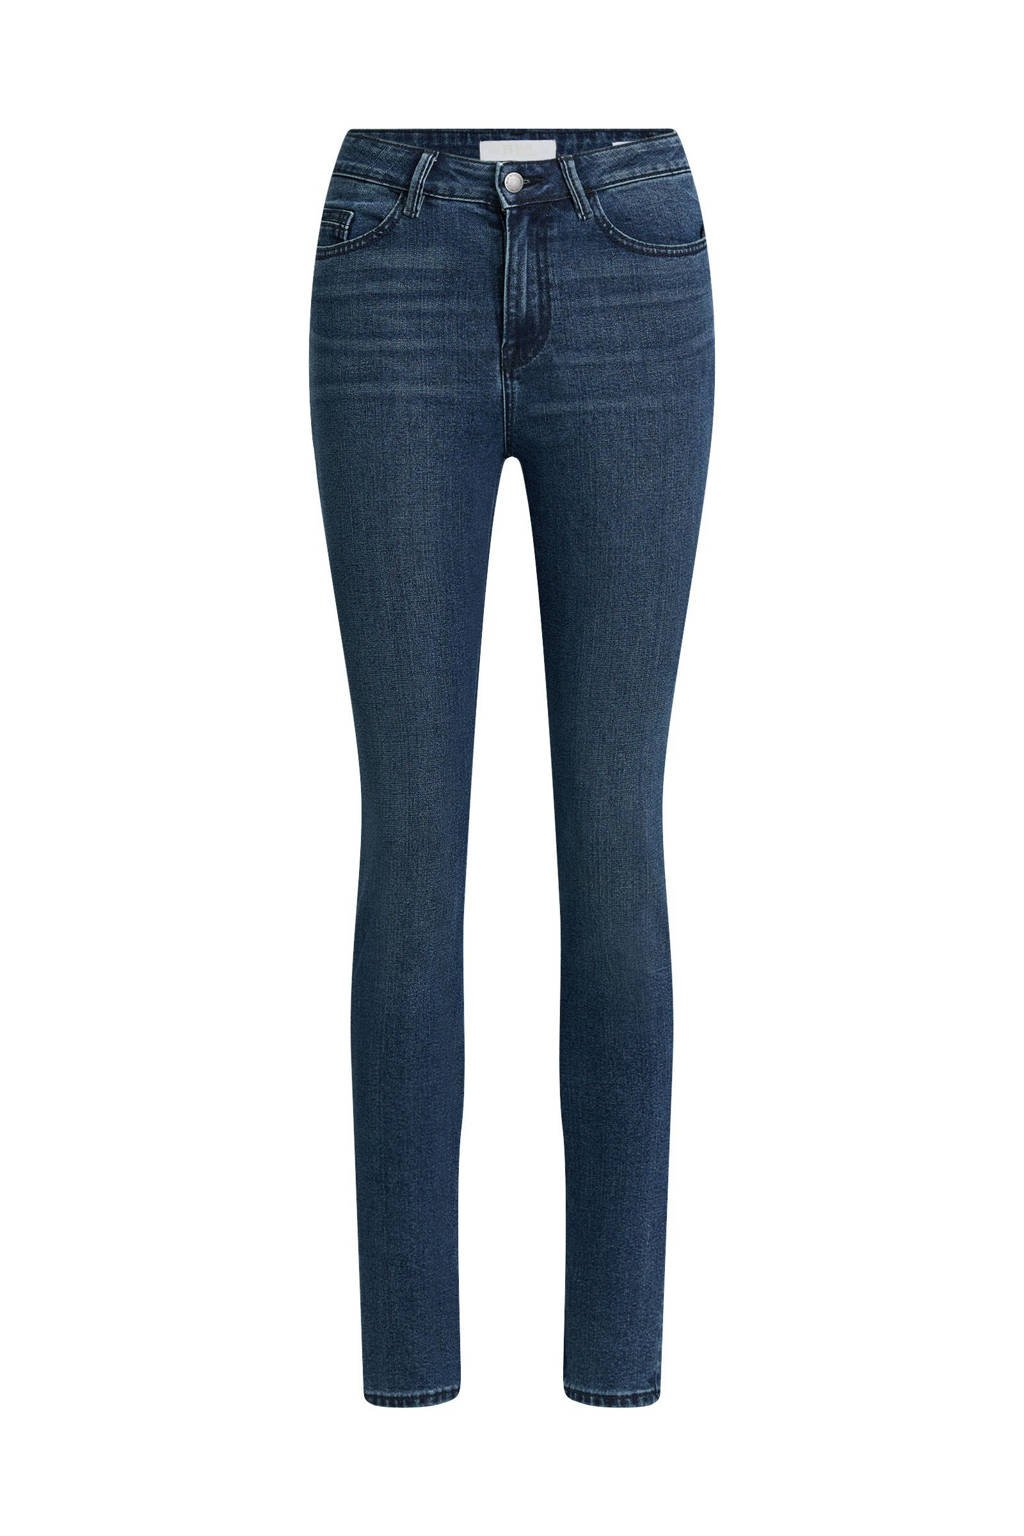 WE Fashion Blue Ridge high waist skinny jeans blue dust, Blue Dust